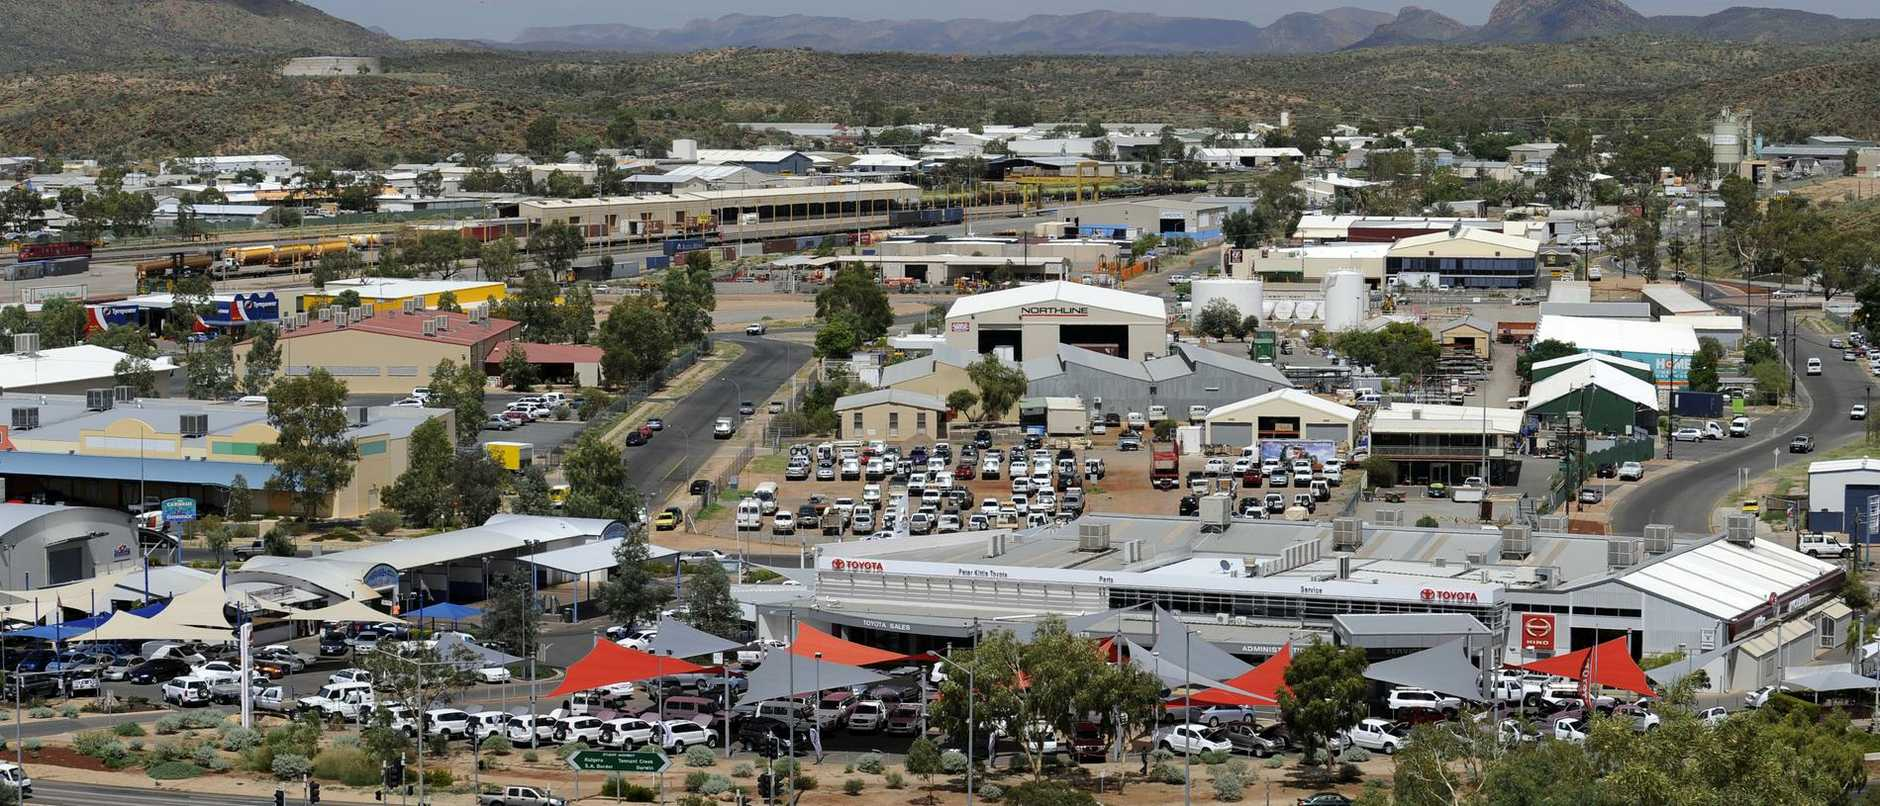 LANDMARKS Alice Springs - Looking at the township with Peter Kittle's yard in the foreground from Anzac Hill